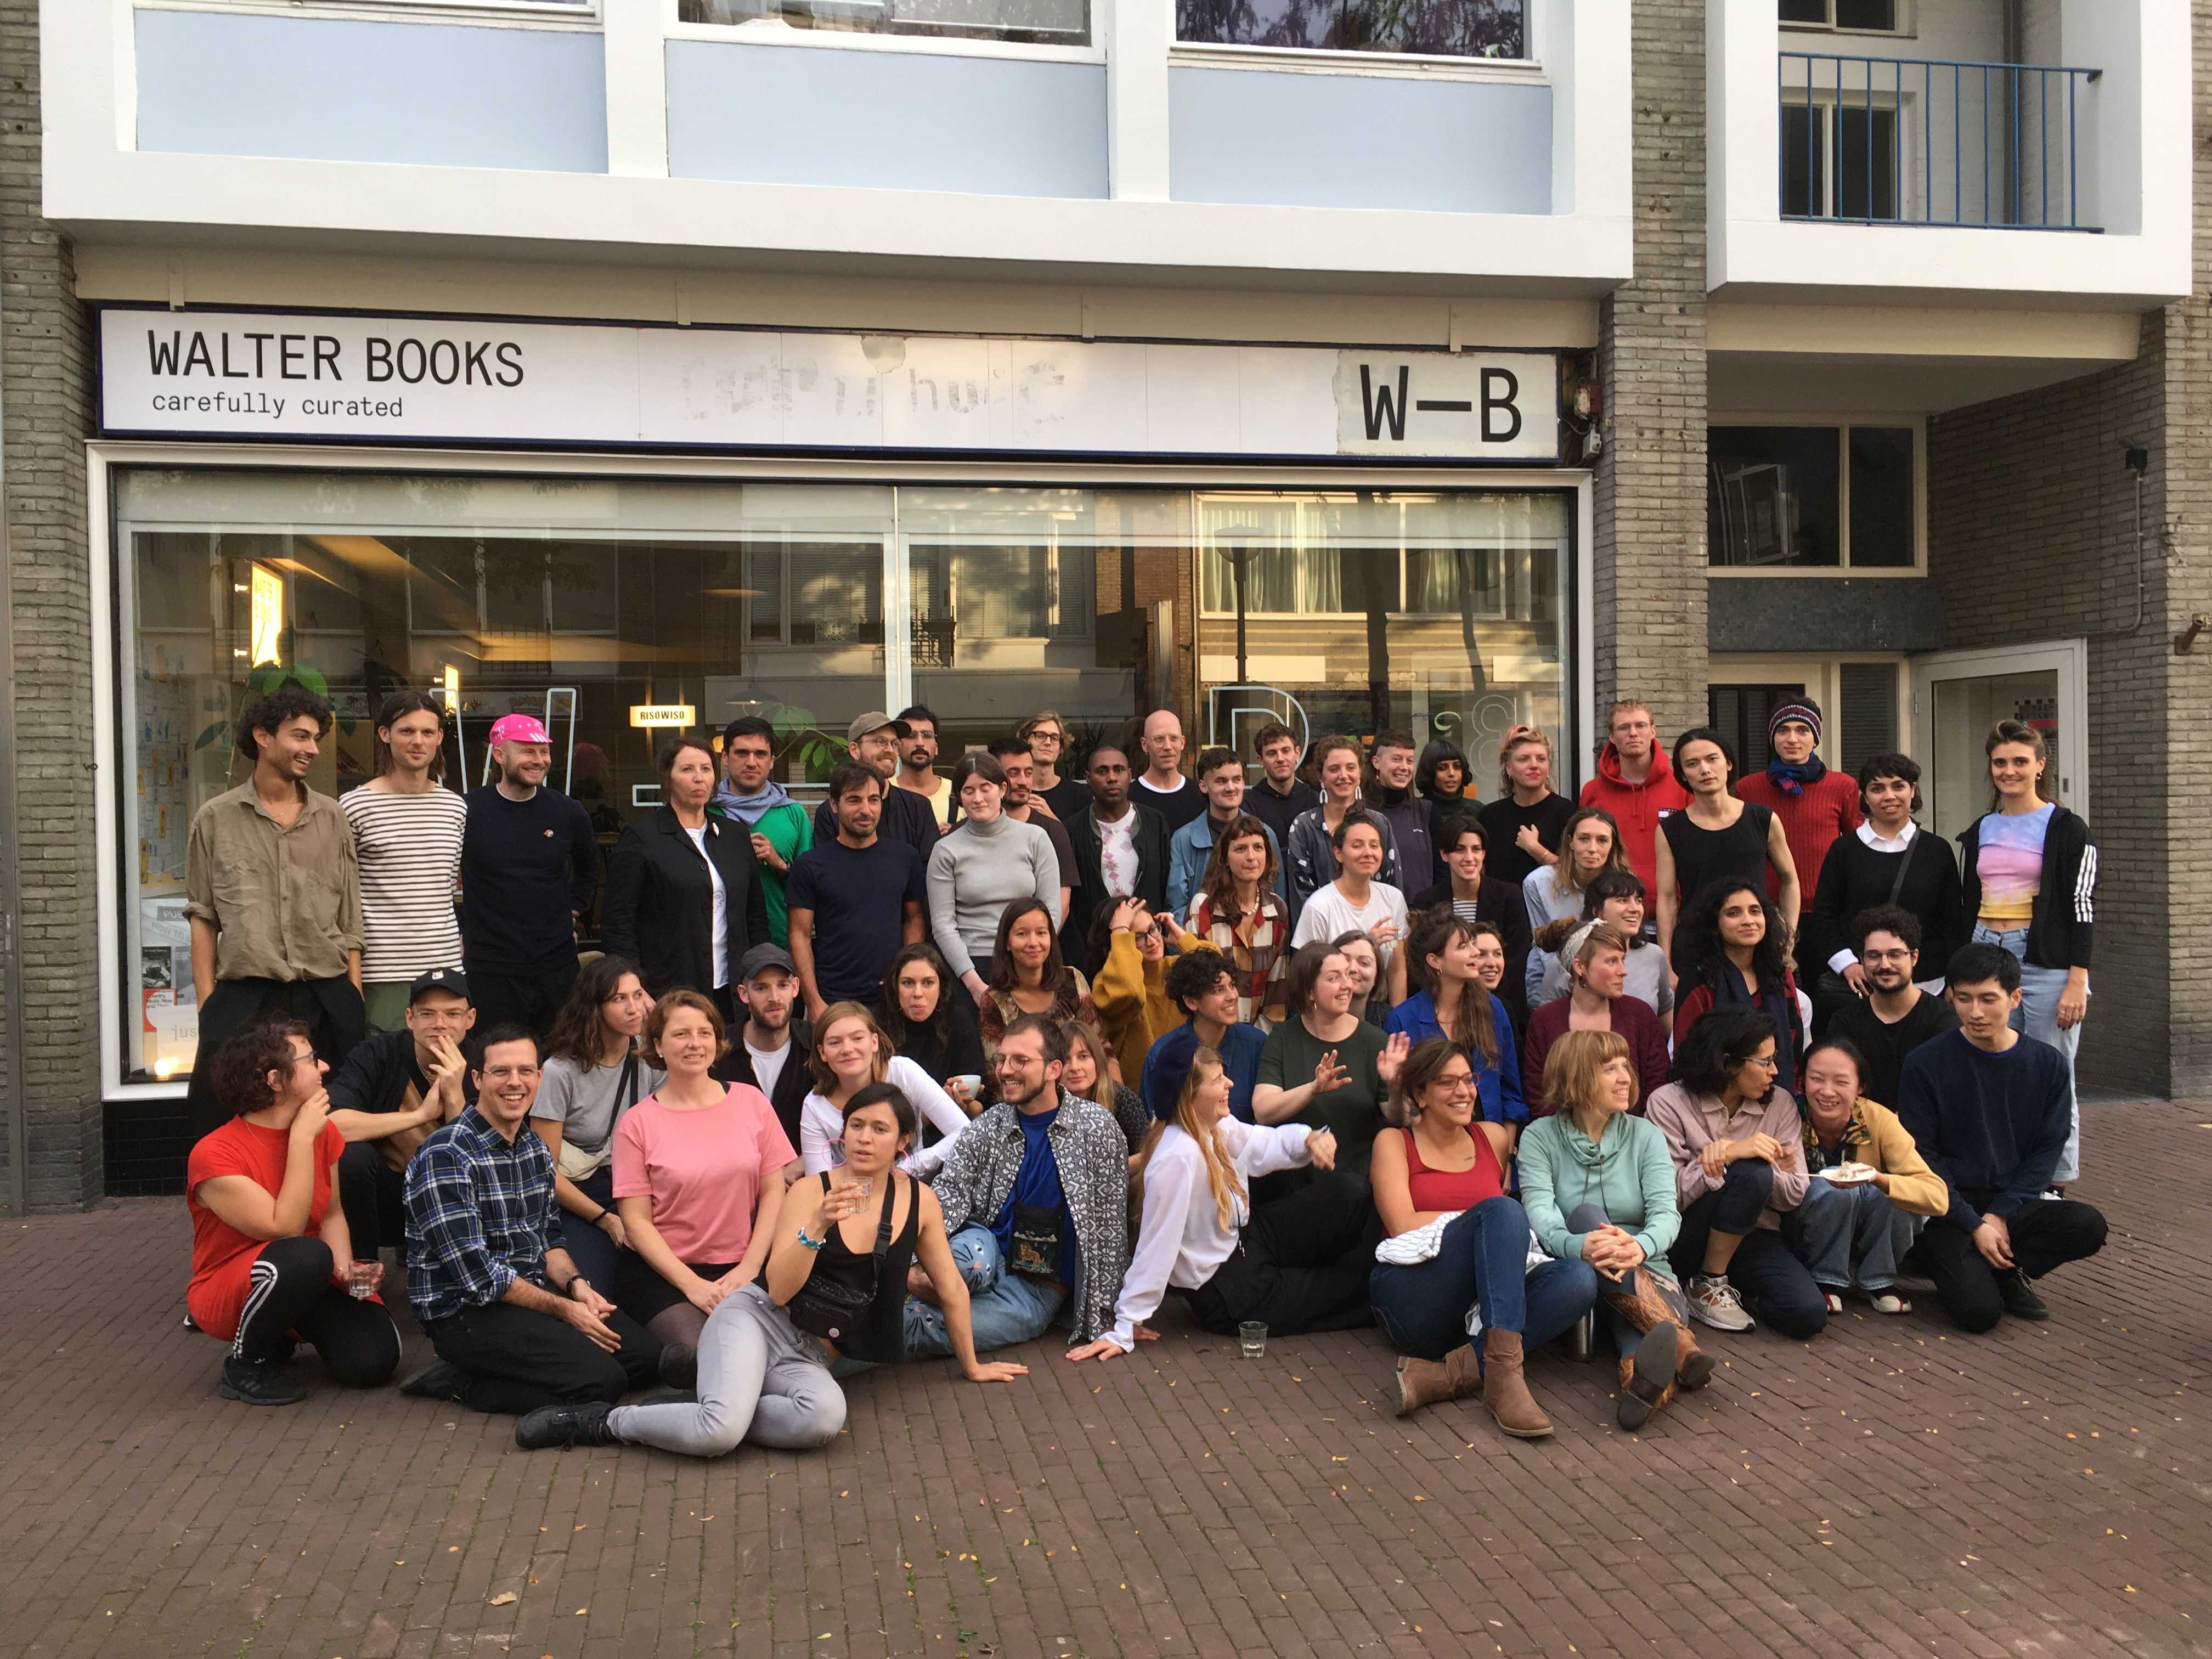 DAI year 2017-2019/DAI year 2018-2020 in front of WALTERbooks in Arnhem. October, 2018. Photo: Jacq van der Spek